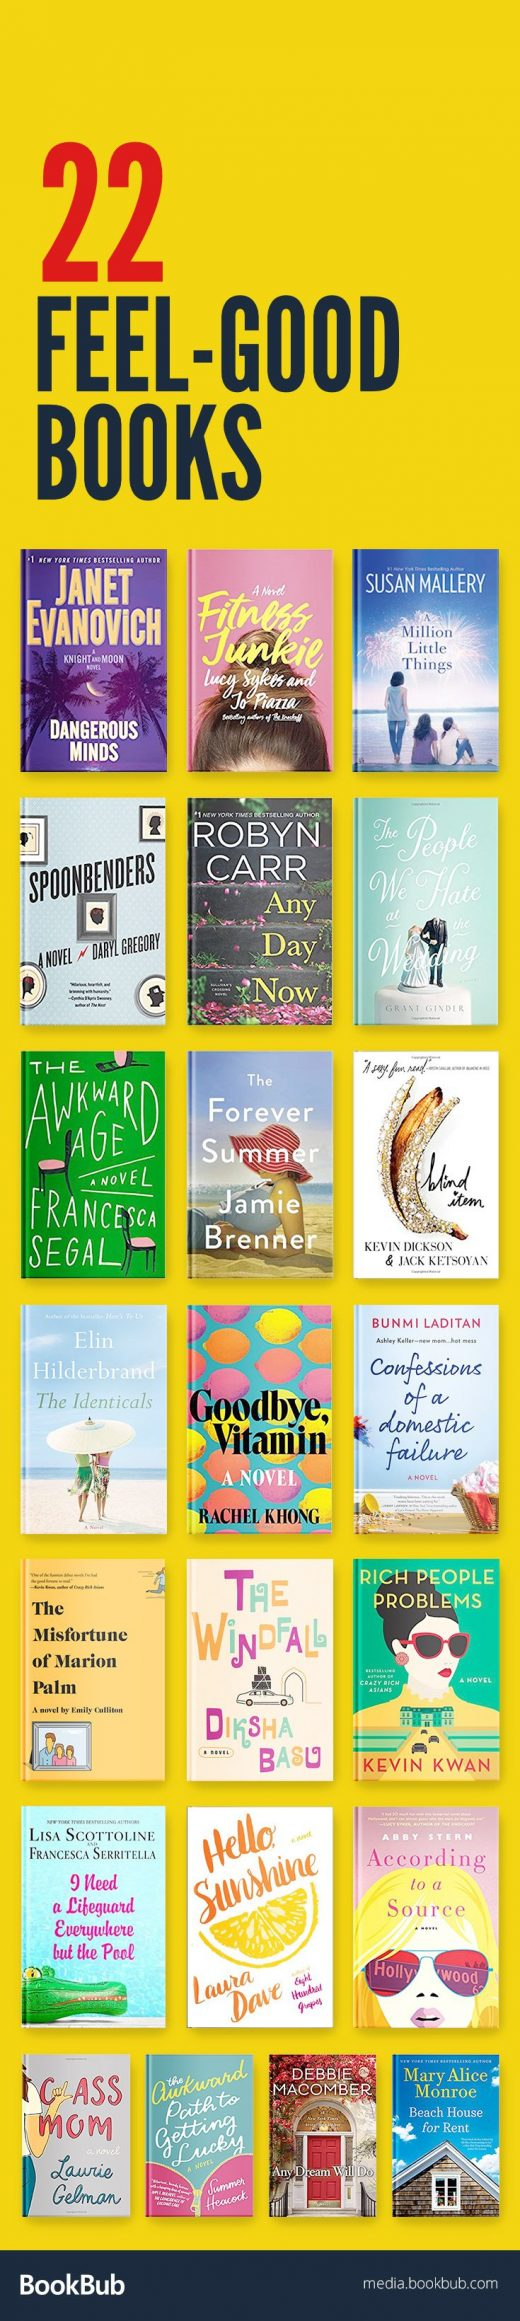 22 Feel-Good Books to Read on a Rainy Day